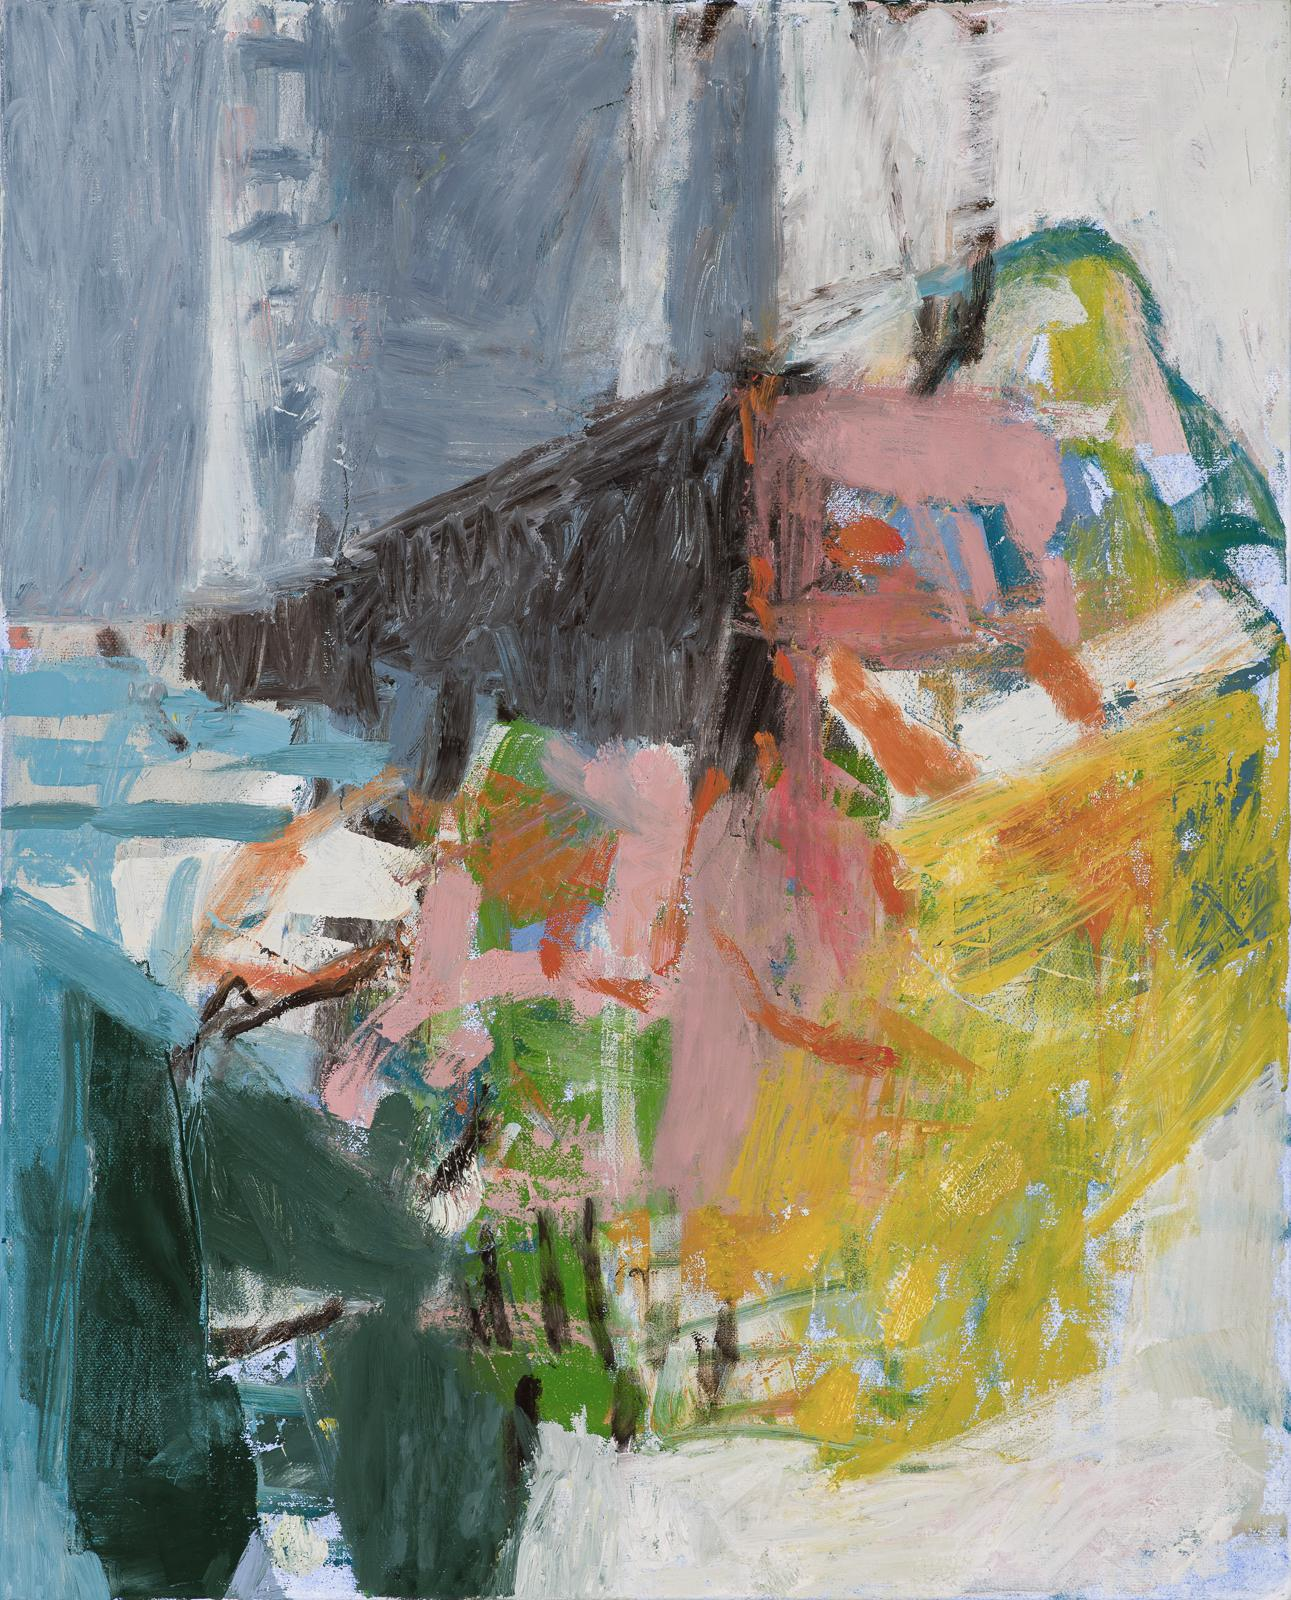 What Do I know of This Place 1 (Abstract Expressionist Painting on Canvas)